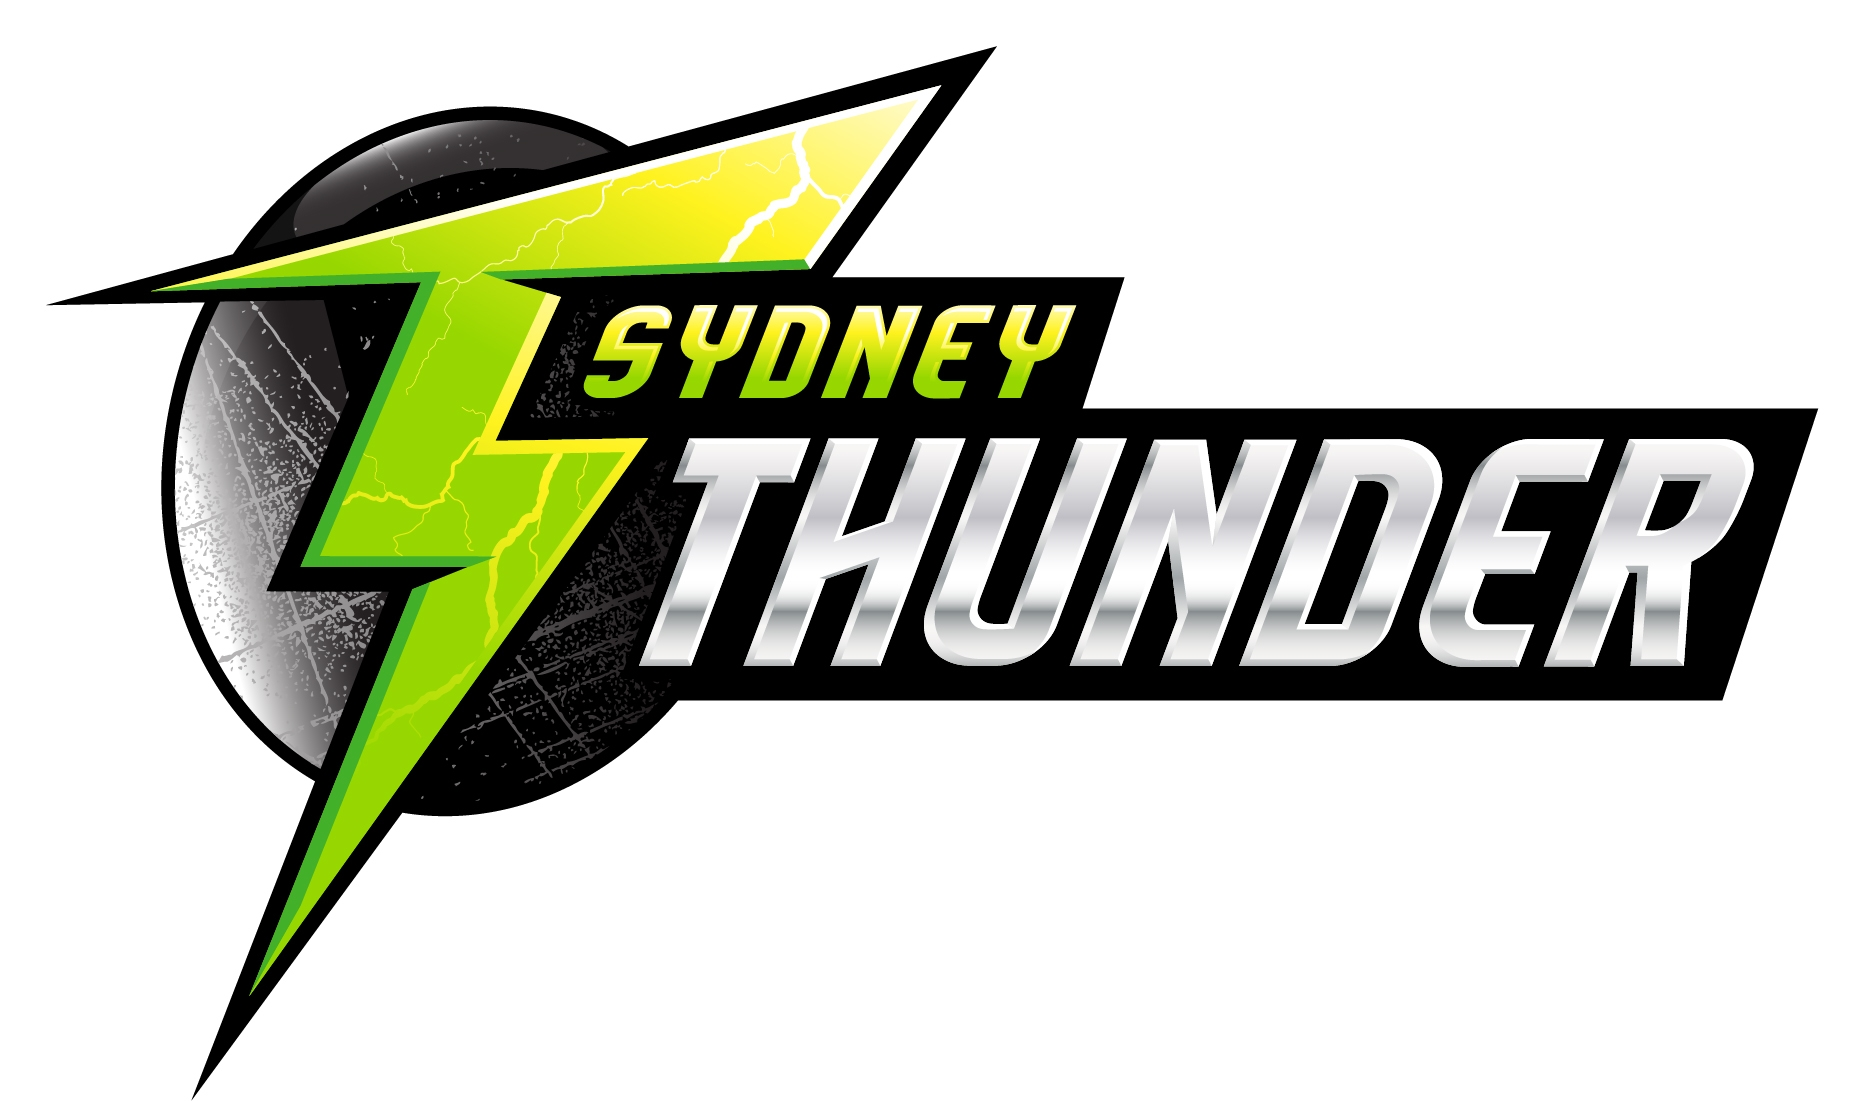 For more information about Sydney Thunder, follow this link